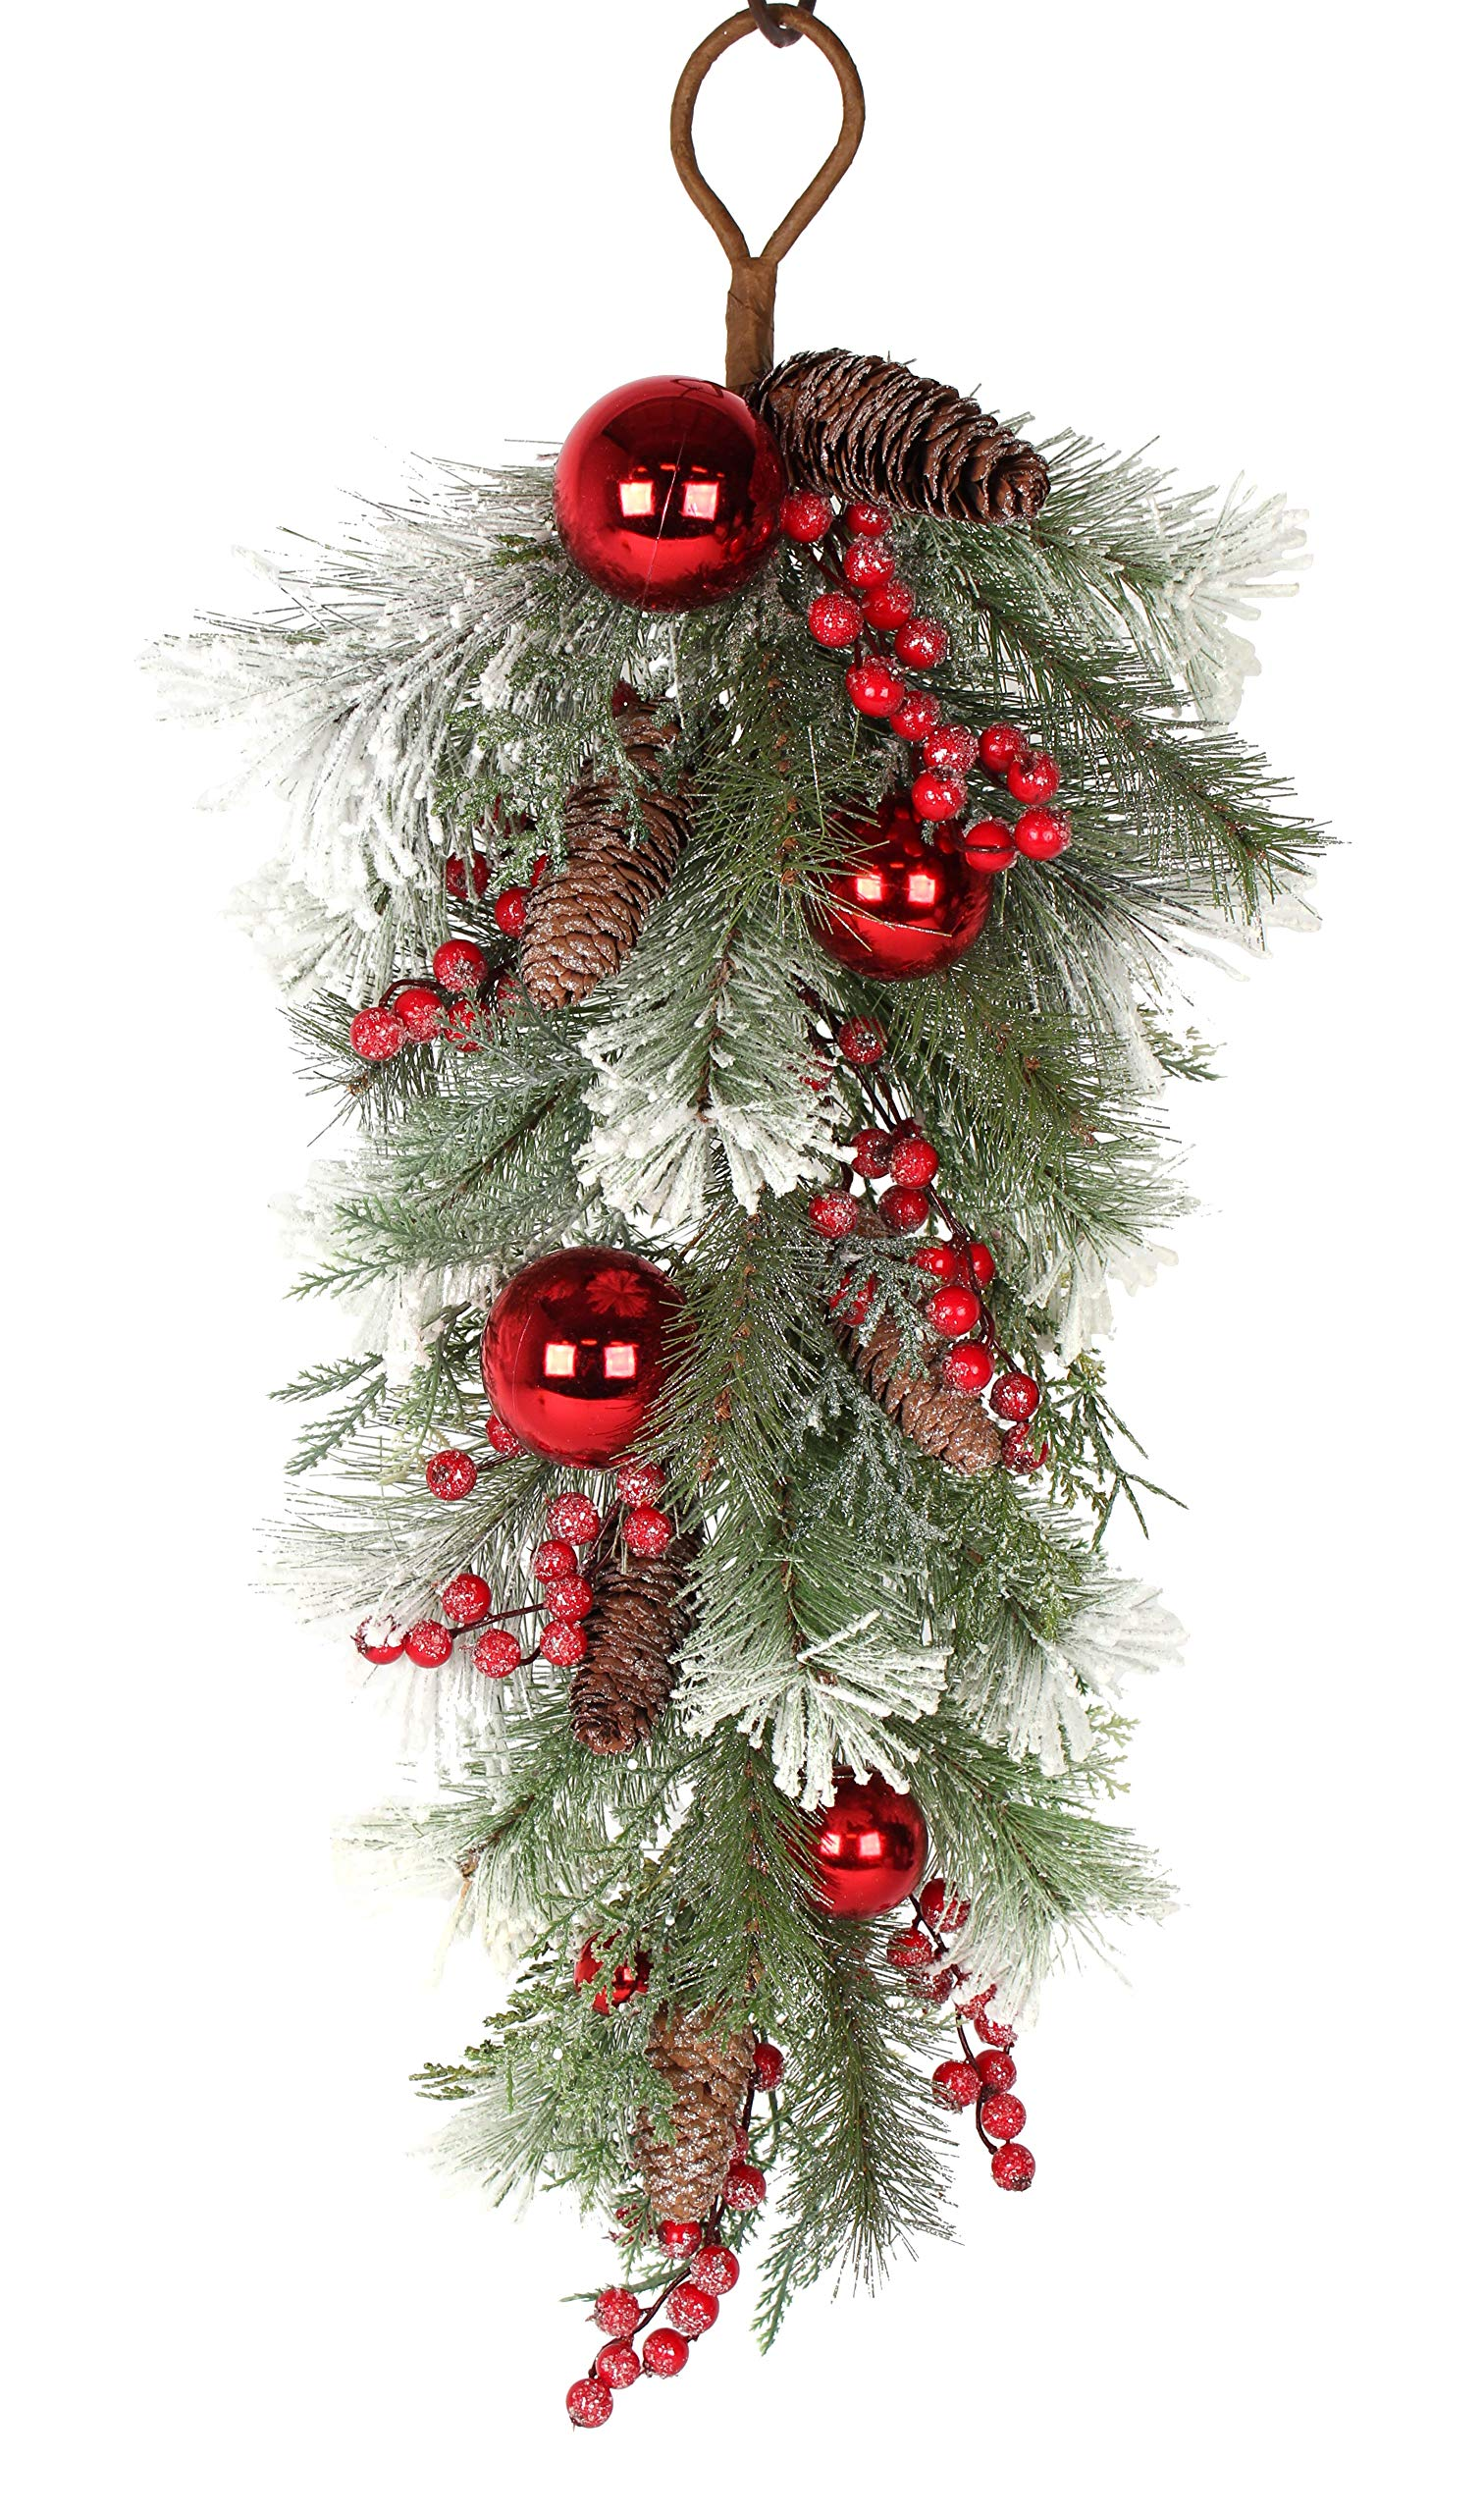 32 Inch Artificial Mixed Pine Christmas Teardrop Swag with Snow, Crystals, Berries, Pine Cones and Red Ball Ornaments by DE